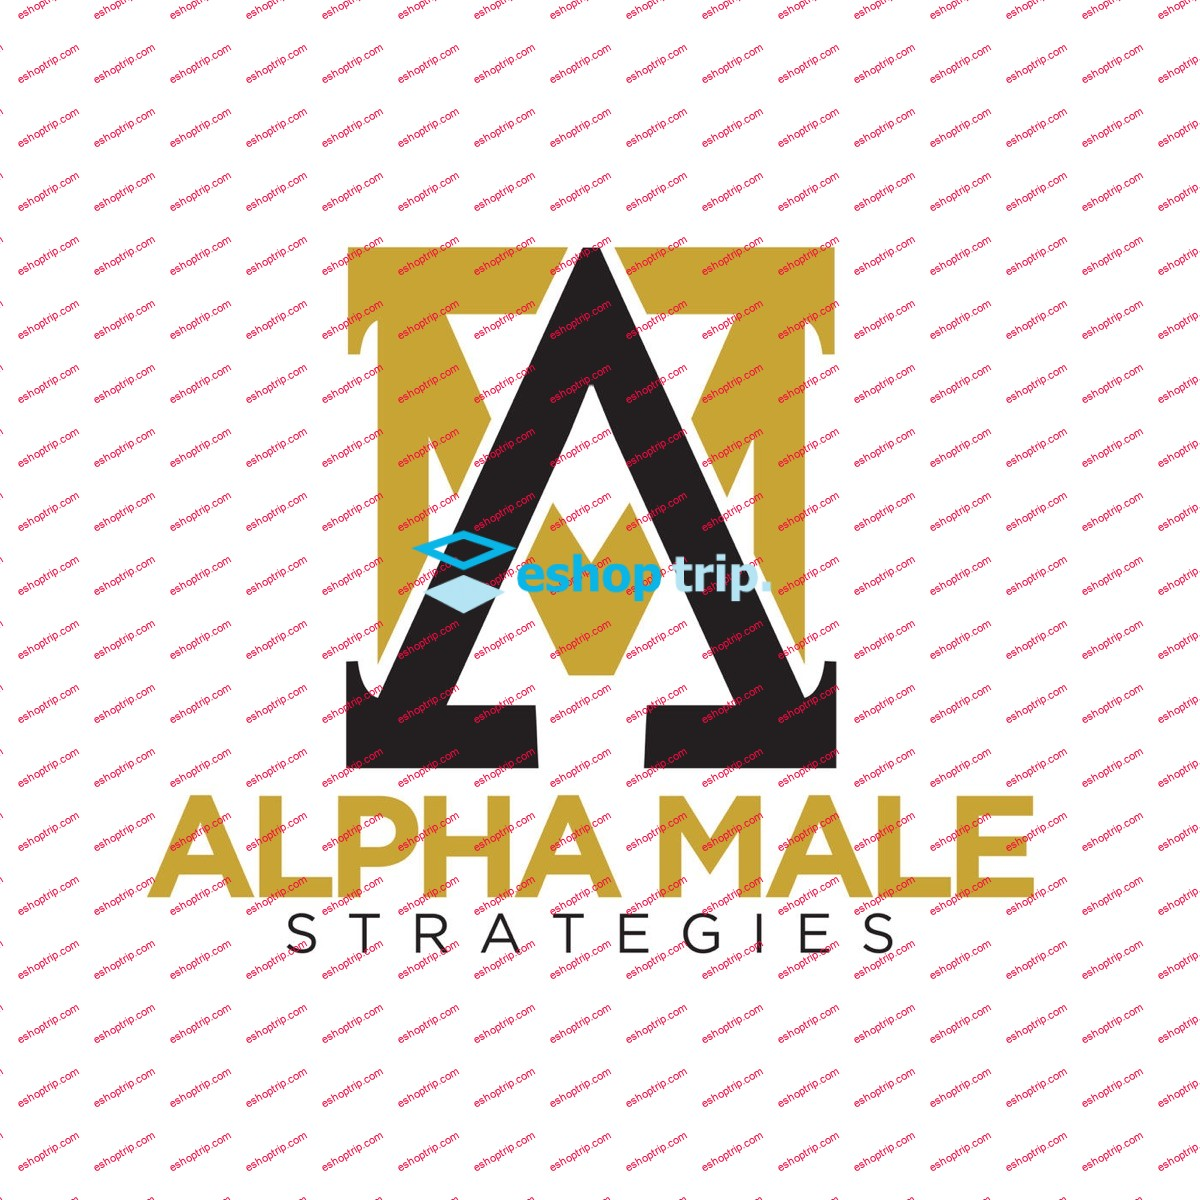 AMS Alpha Male Strategies Purpose and Business Youtube Videos Collection